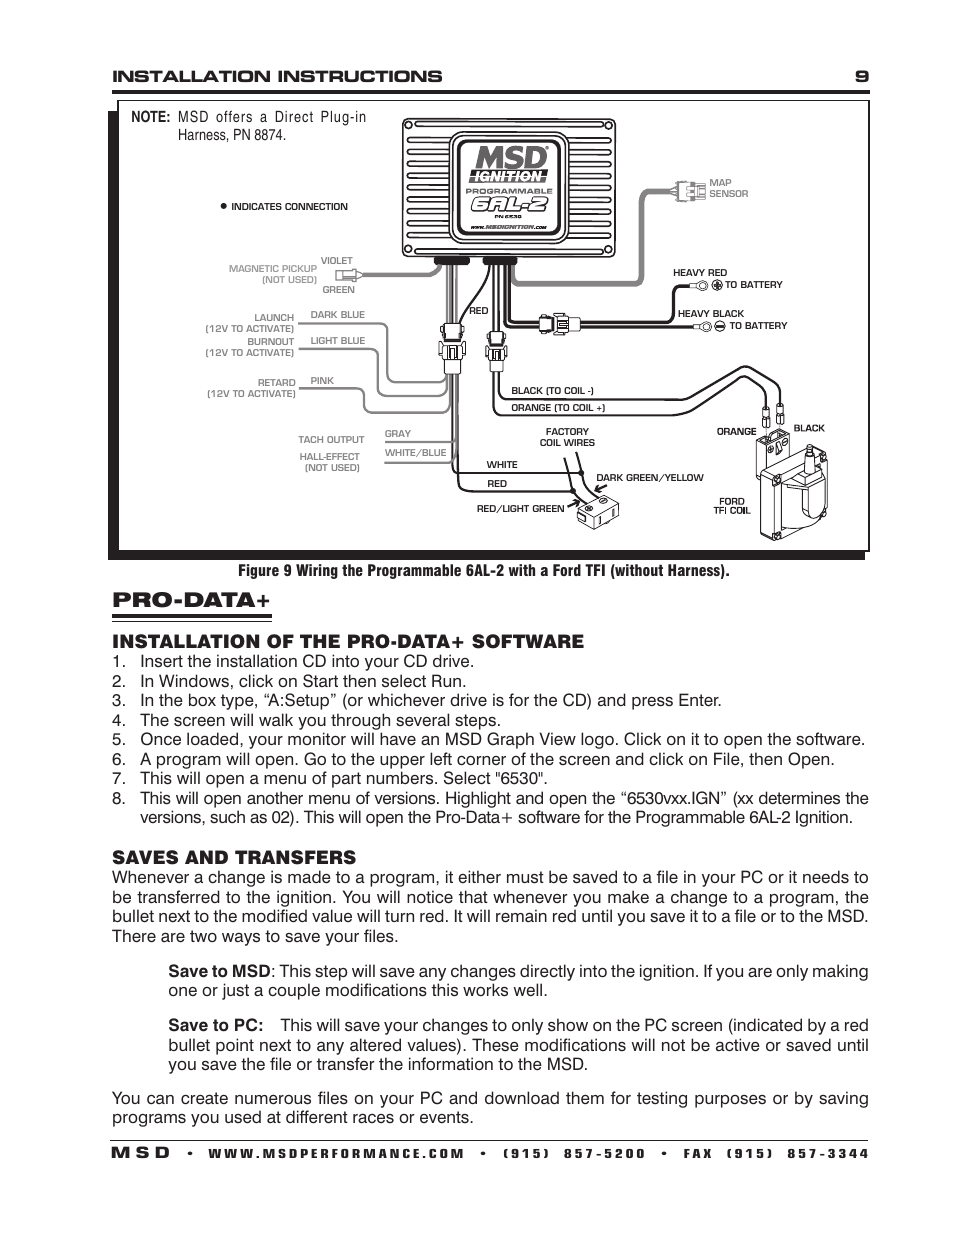 msd programmable 7 diagram great installation of wiring diagram \u2022 Msd6a Wiring Diagram for A pro data installation of the pro data software saves msd digital 6 wiring diagram msd wiring